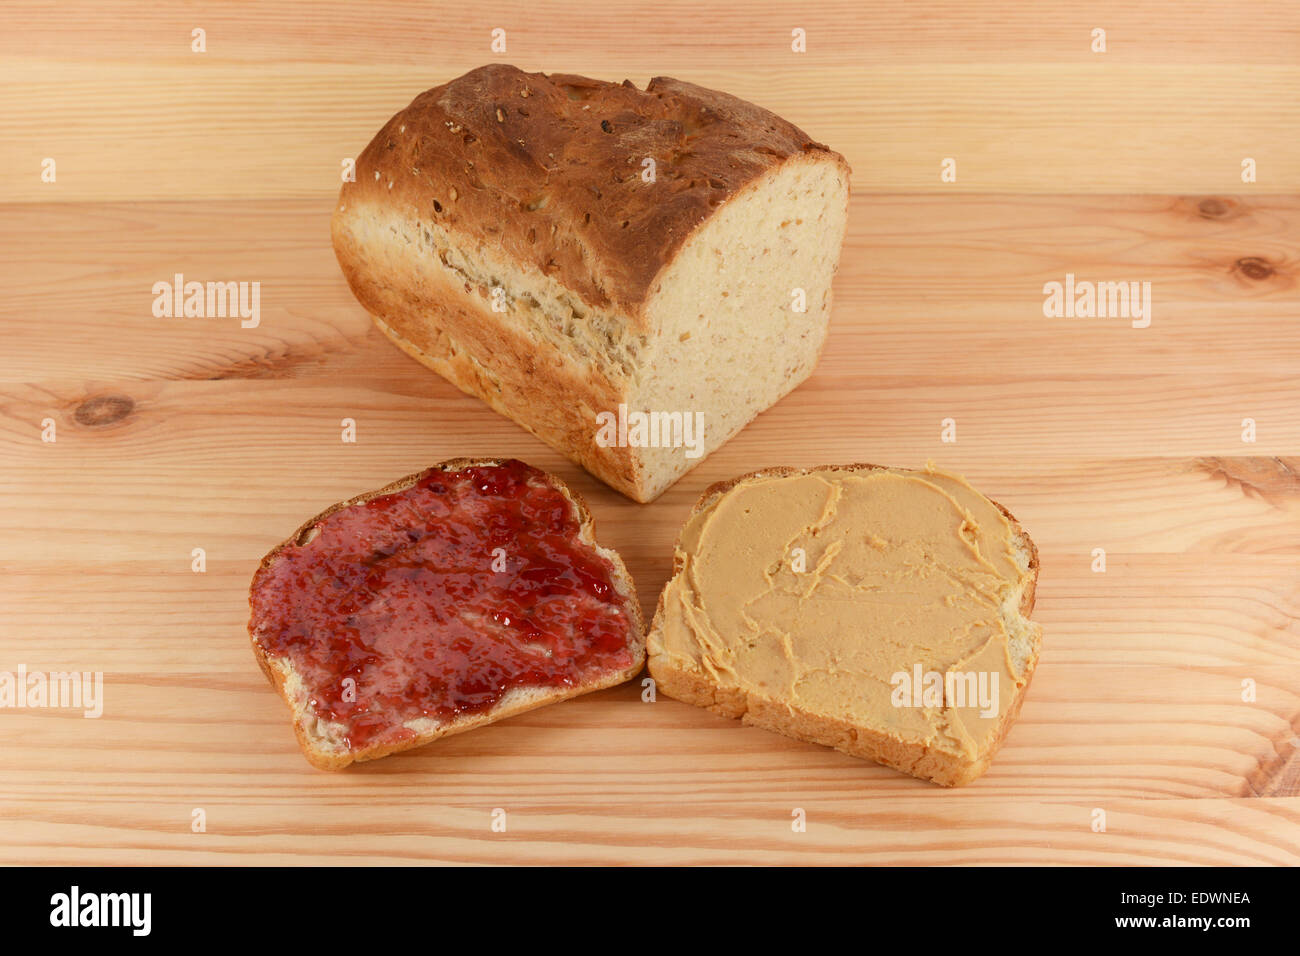 Cut Loaf Of Fresh Oat And Linseed Bread With Jam And